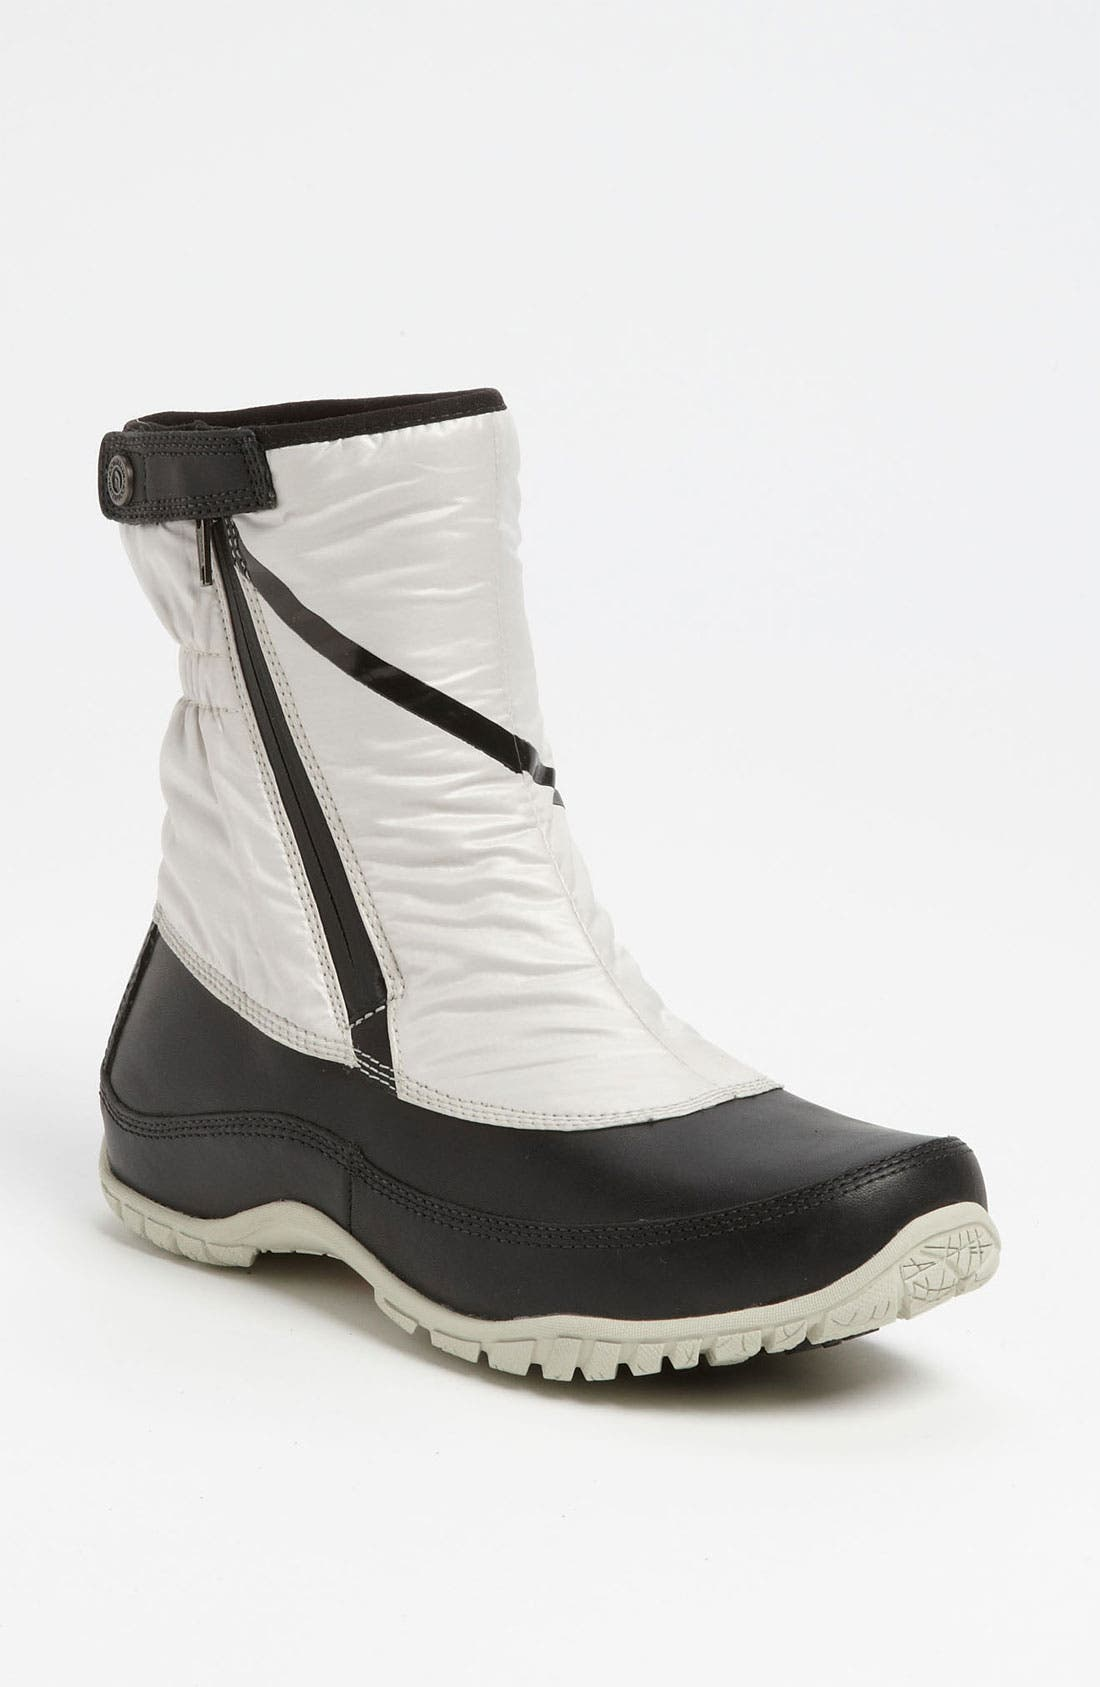 Main Image - The North Face 'Anna Purna' Mid Zip Boot